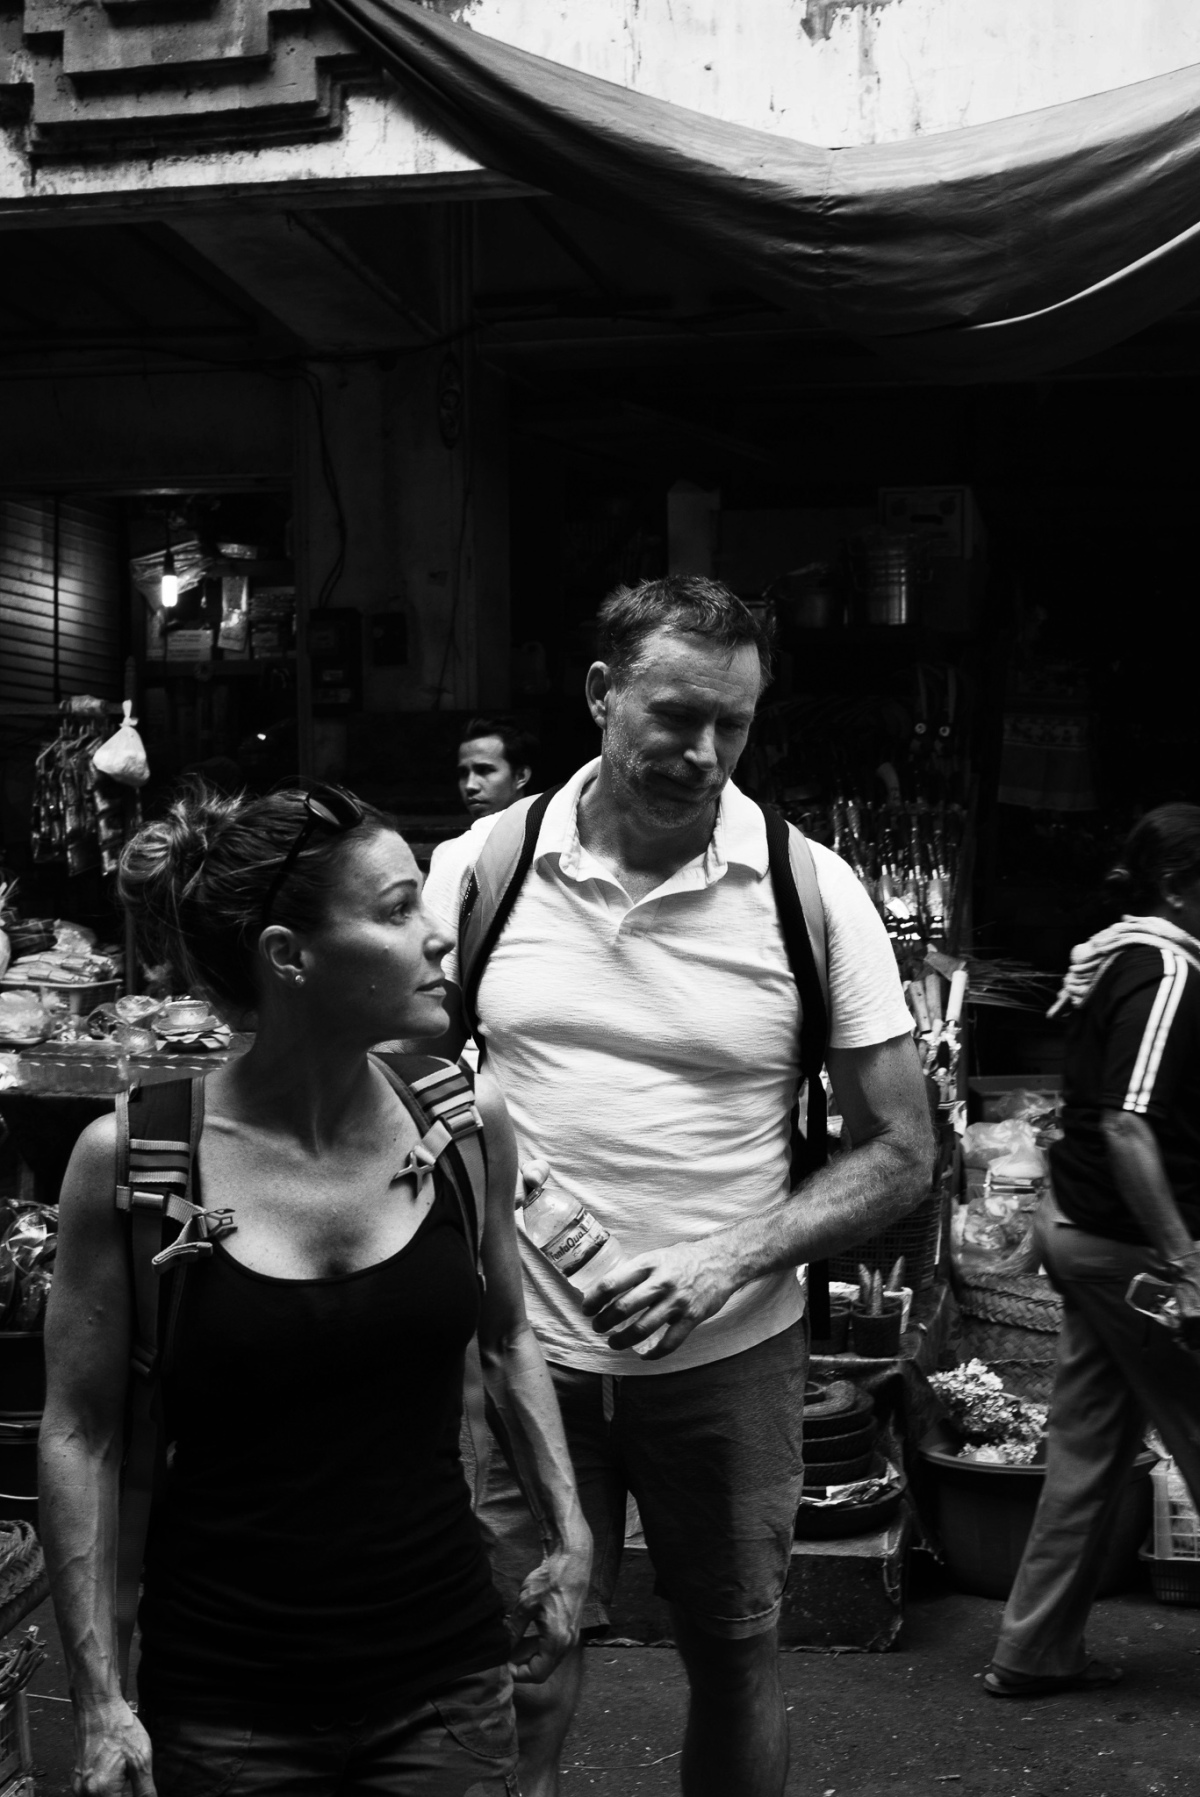 Pasar Ubud Tour - Bali Street Photographer - mark l chaves